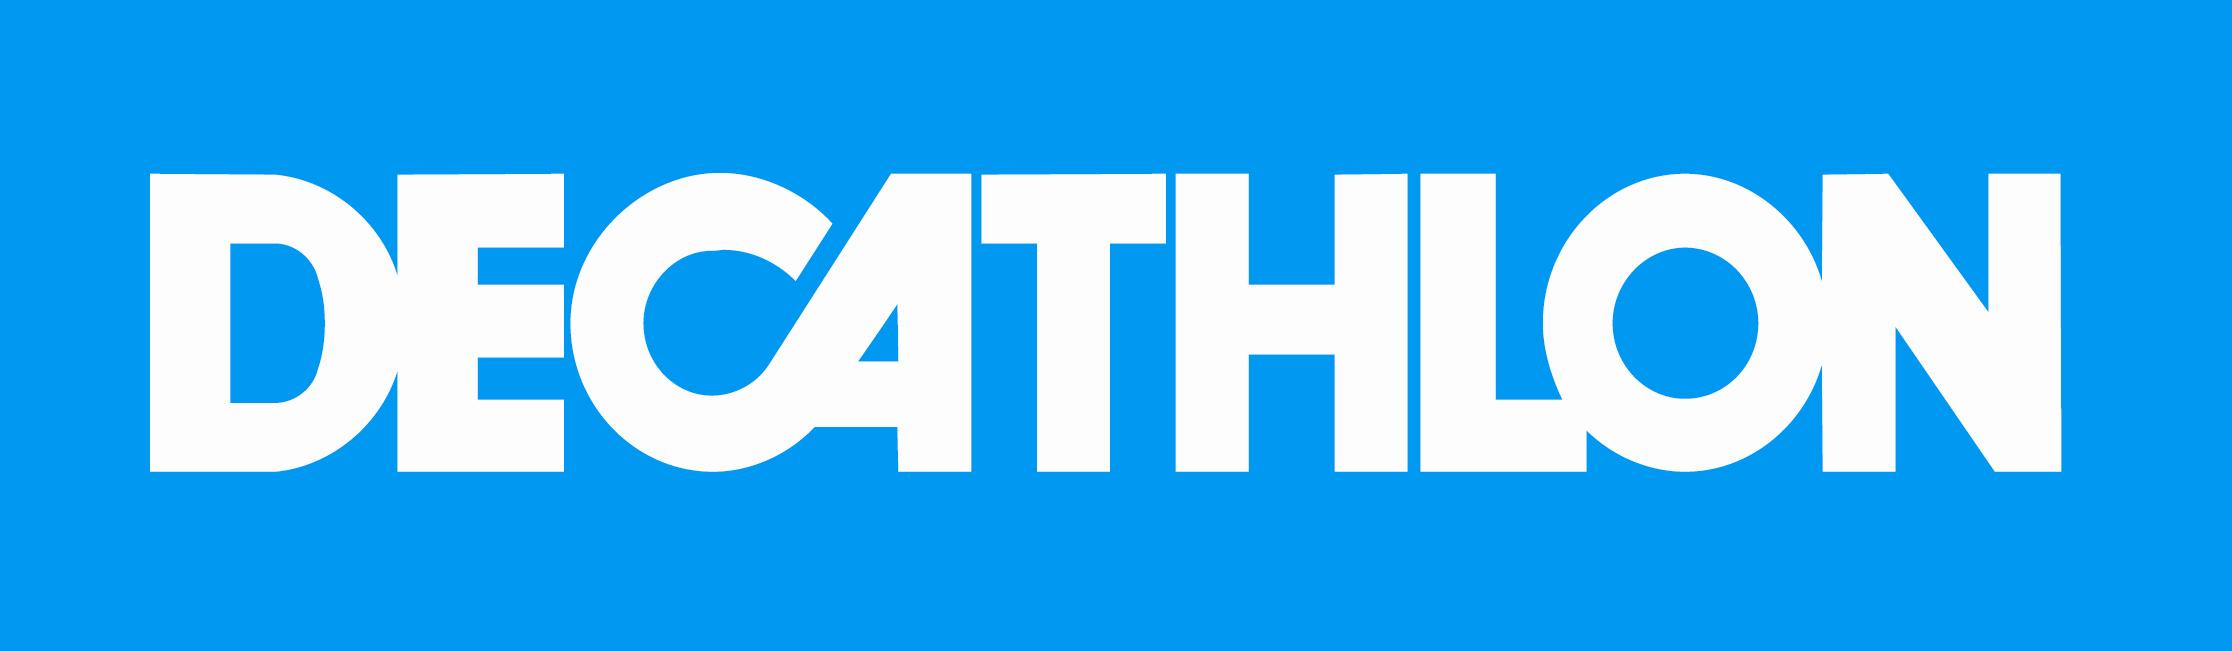 decathlon1